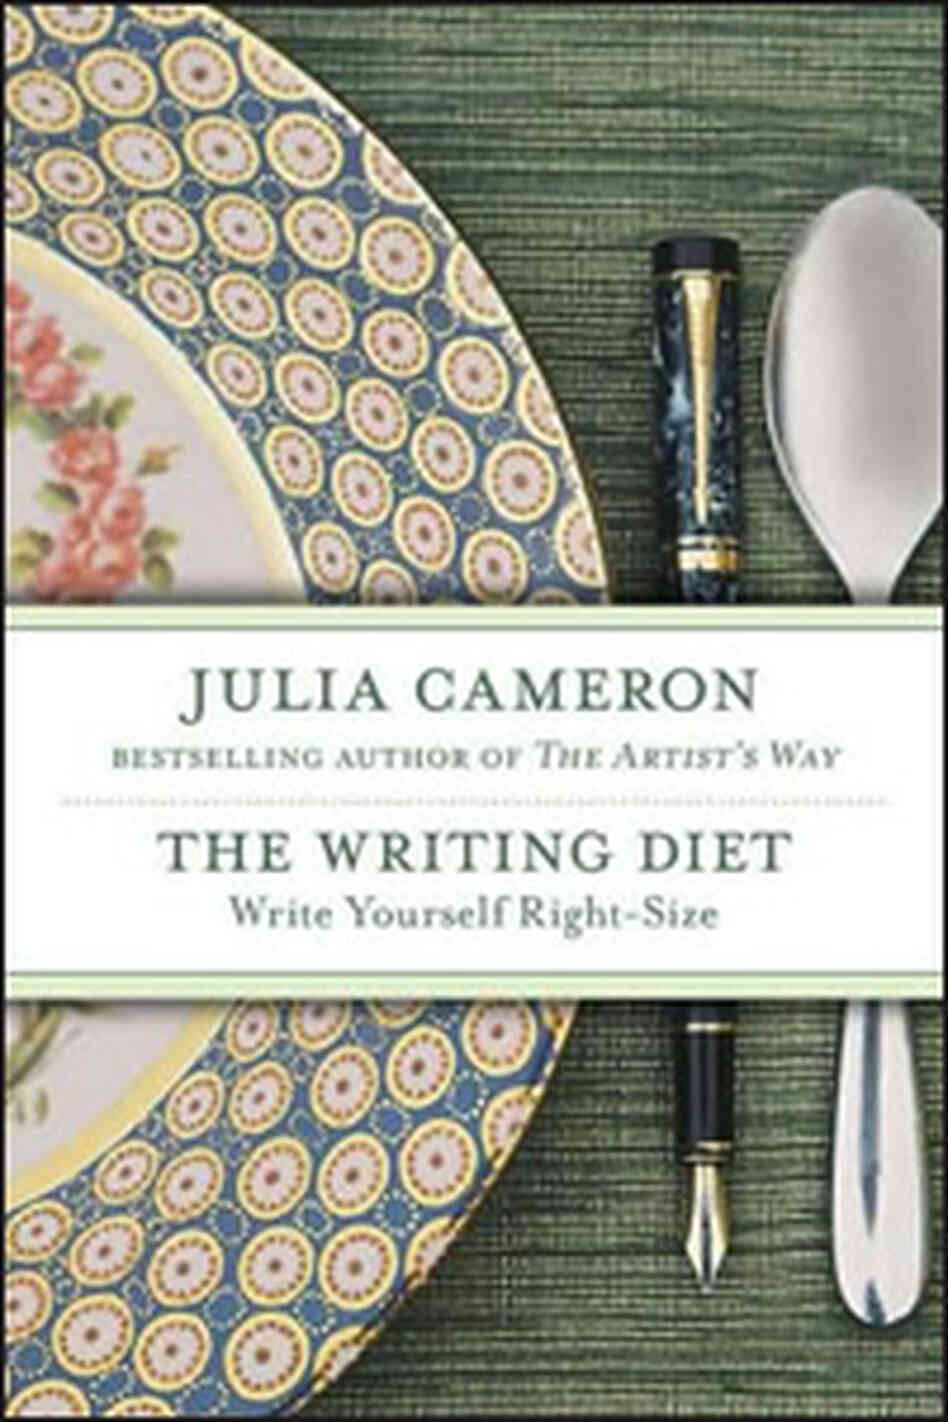 'The Writing Diet'